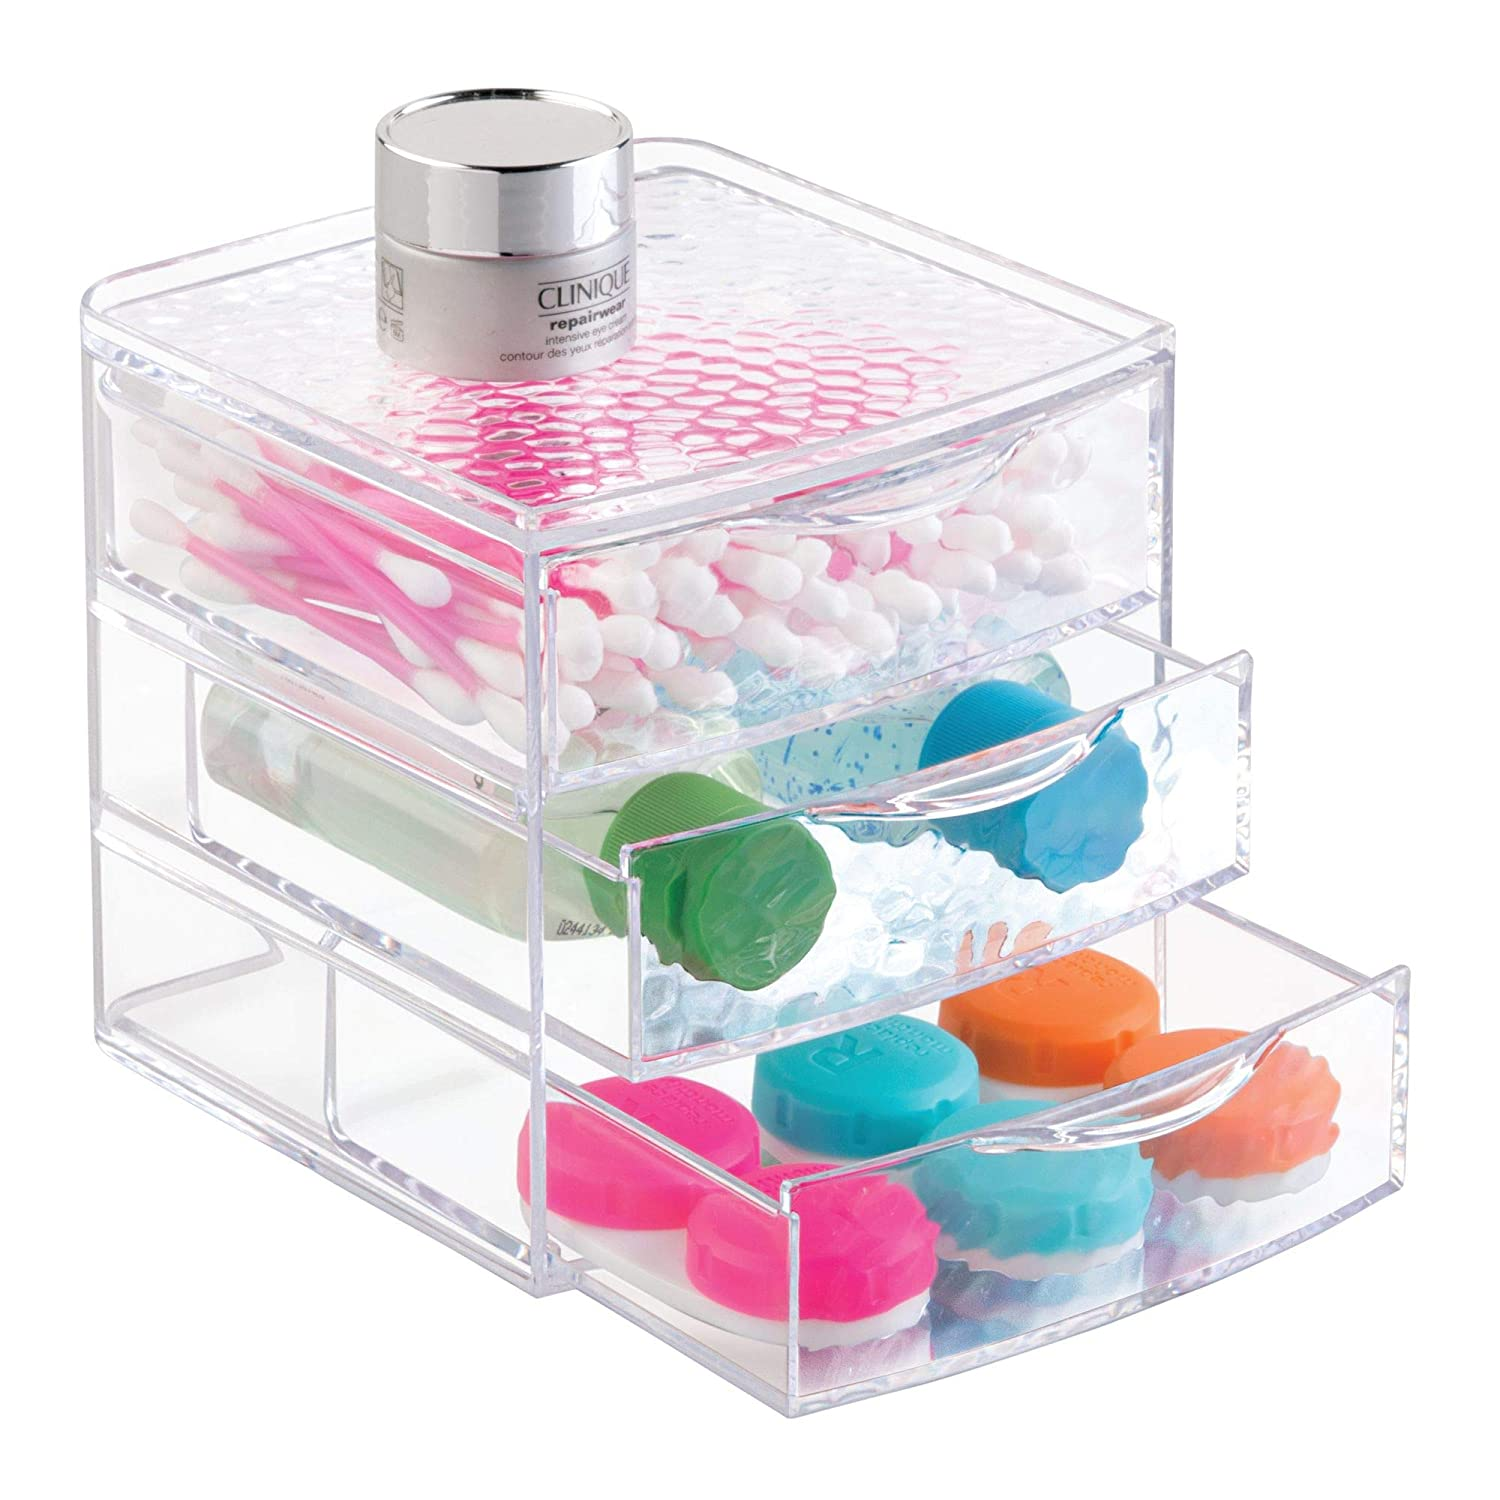 "iDesign Rain Plastic 3-Drawer Jewelry Box, Compact Storage Organization Drawers Set for Cosmetics, Dental Supplies, Hair Care, Bathroom, Office, Dorm, Desk, Countertop, 4.5"" x 4.5"" x 5.4"", Clear"